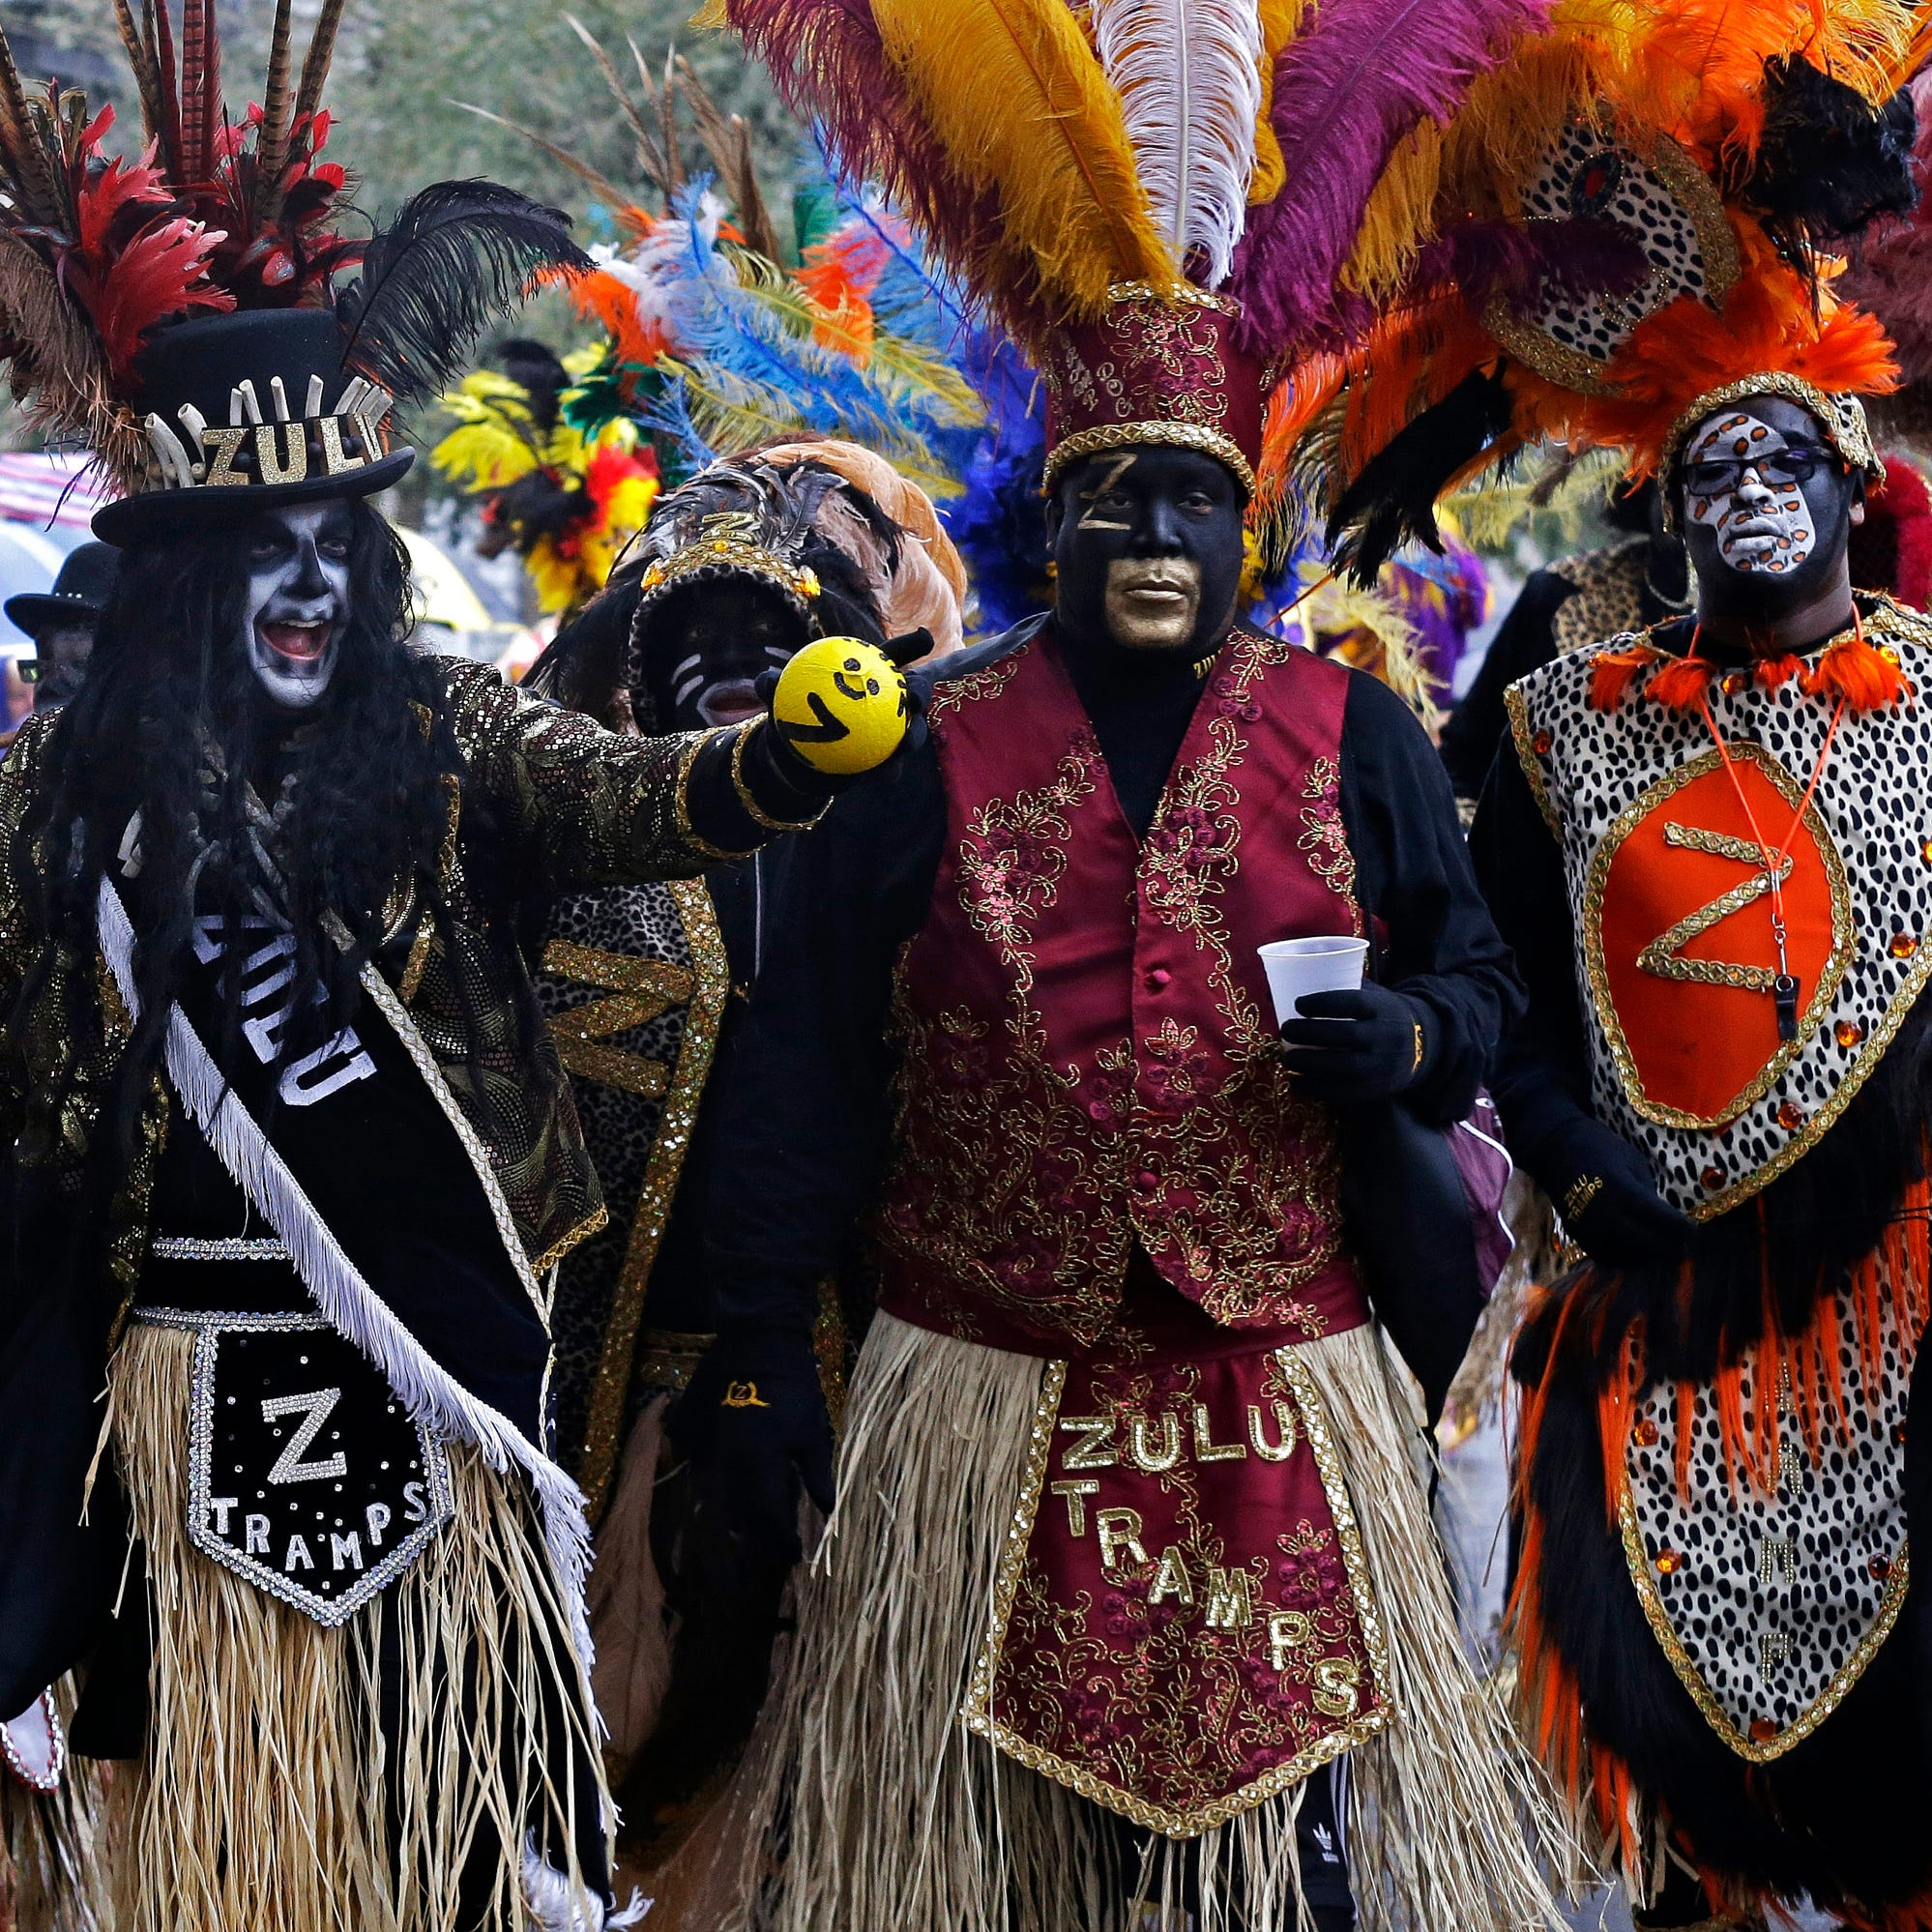 Protesters go after 110-year-old group's Mardi Gras tradition of black makeup